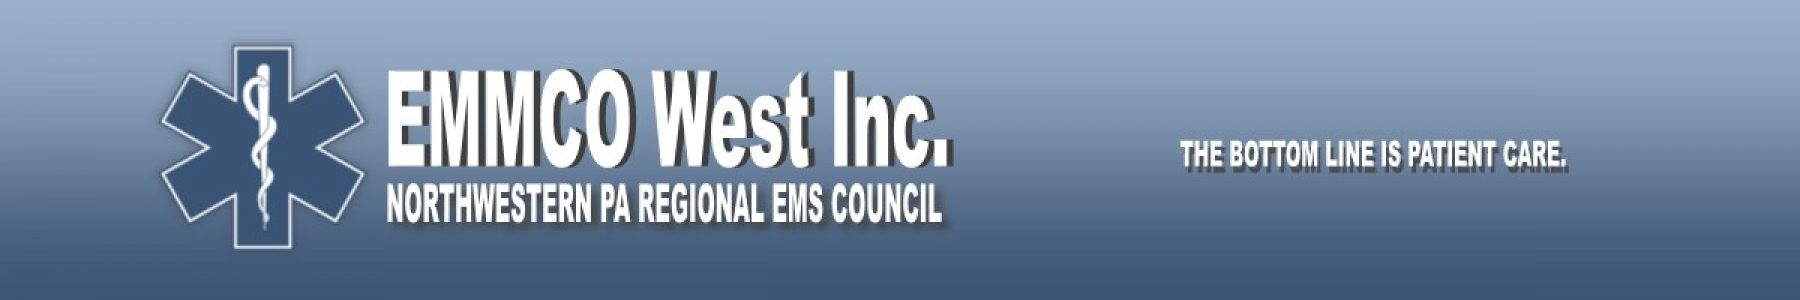 Emmco West Inc.